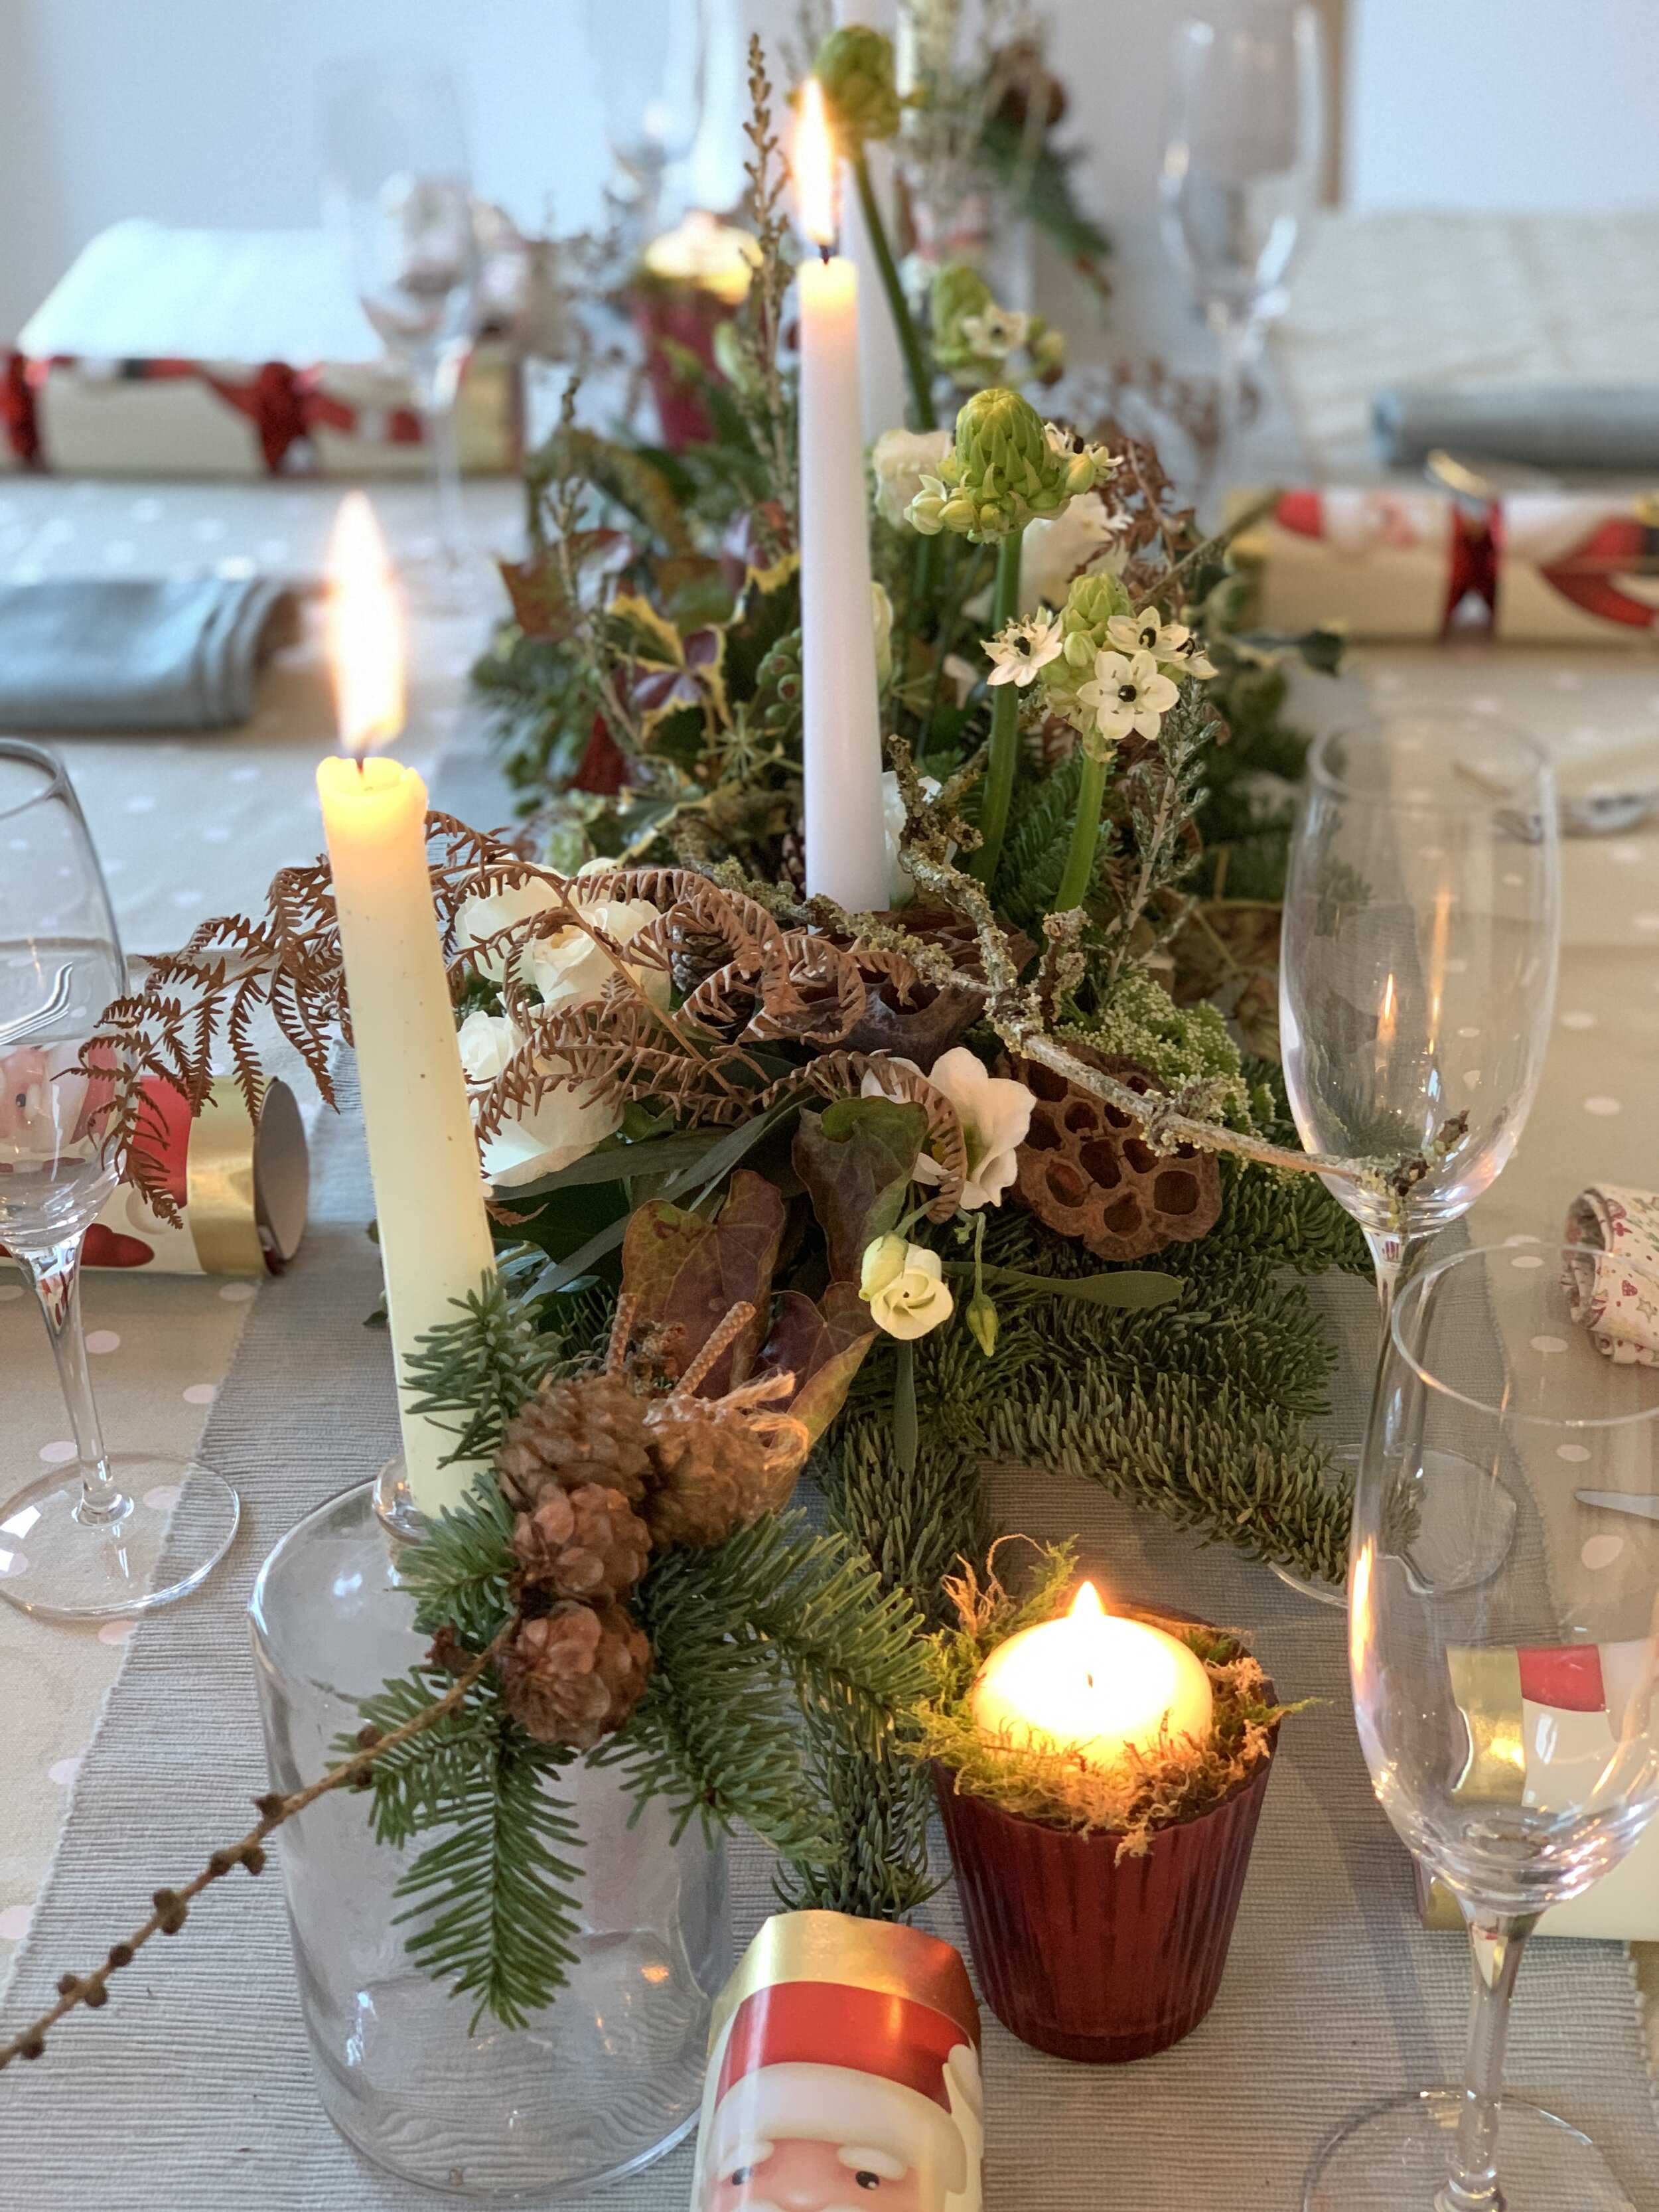 Christmas table design - Materials may vary depending on availability at the time of sourcing.